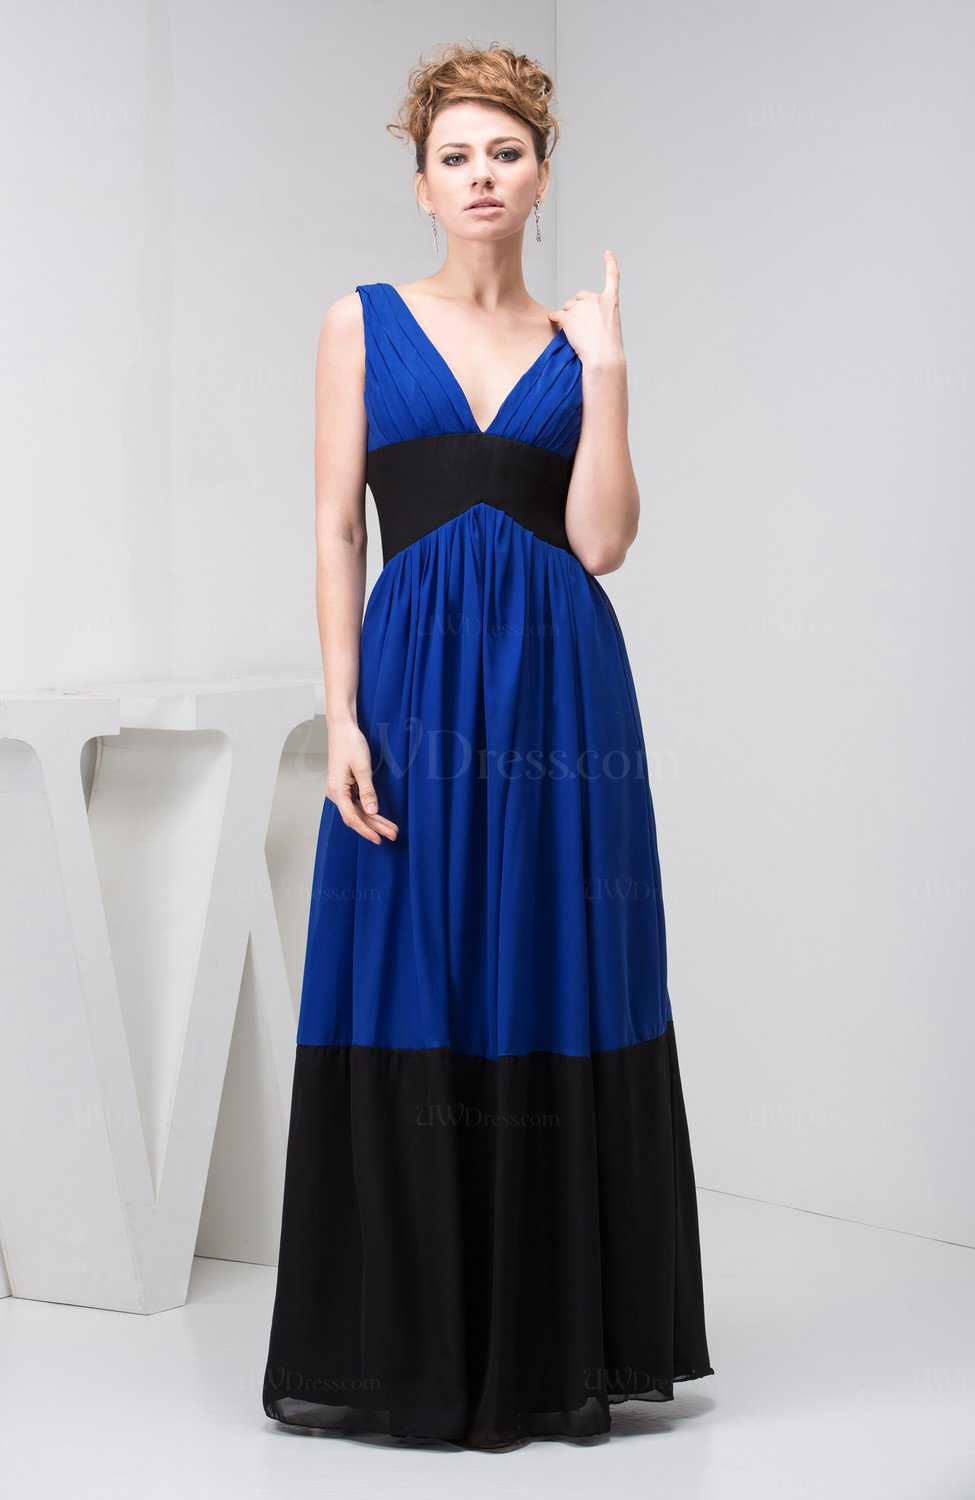 Inexpensive Chic Wedding Dresses : Bridesmaid dress inexpensive sexy chic plain simple destination style